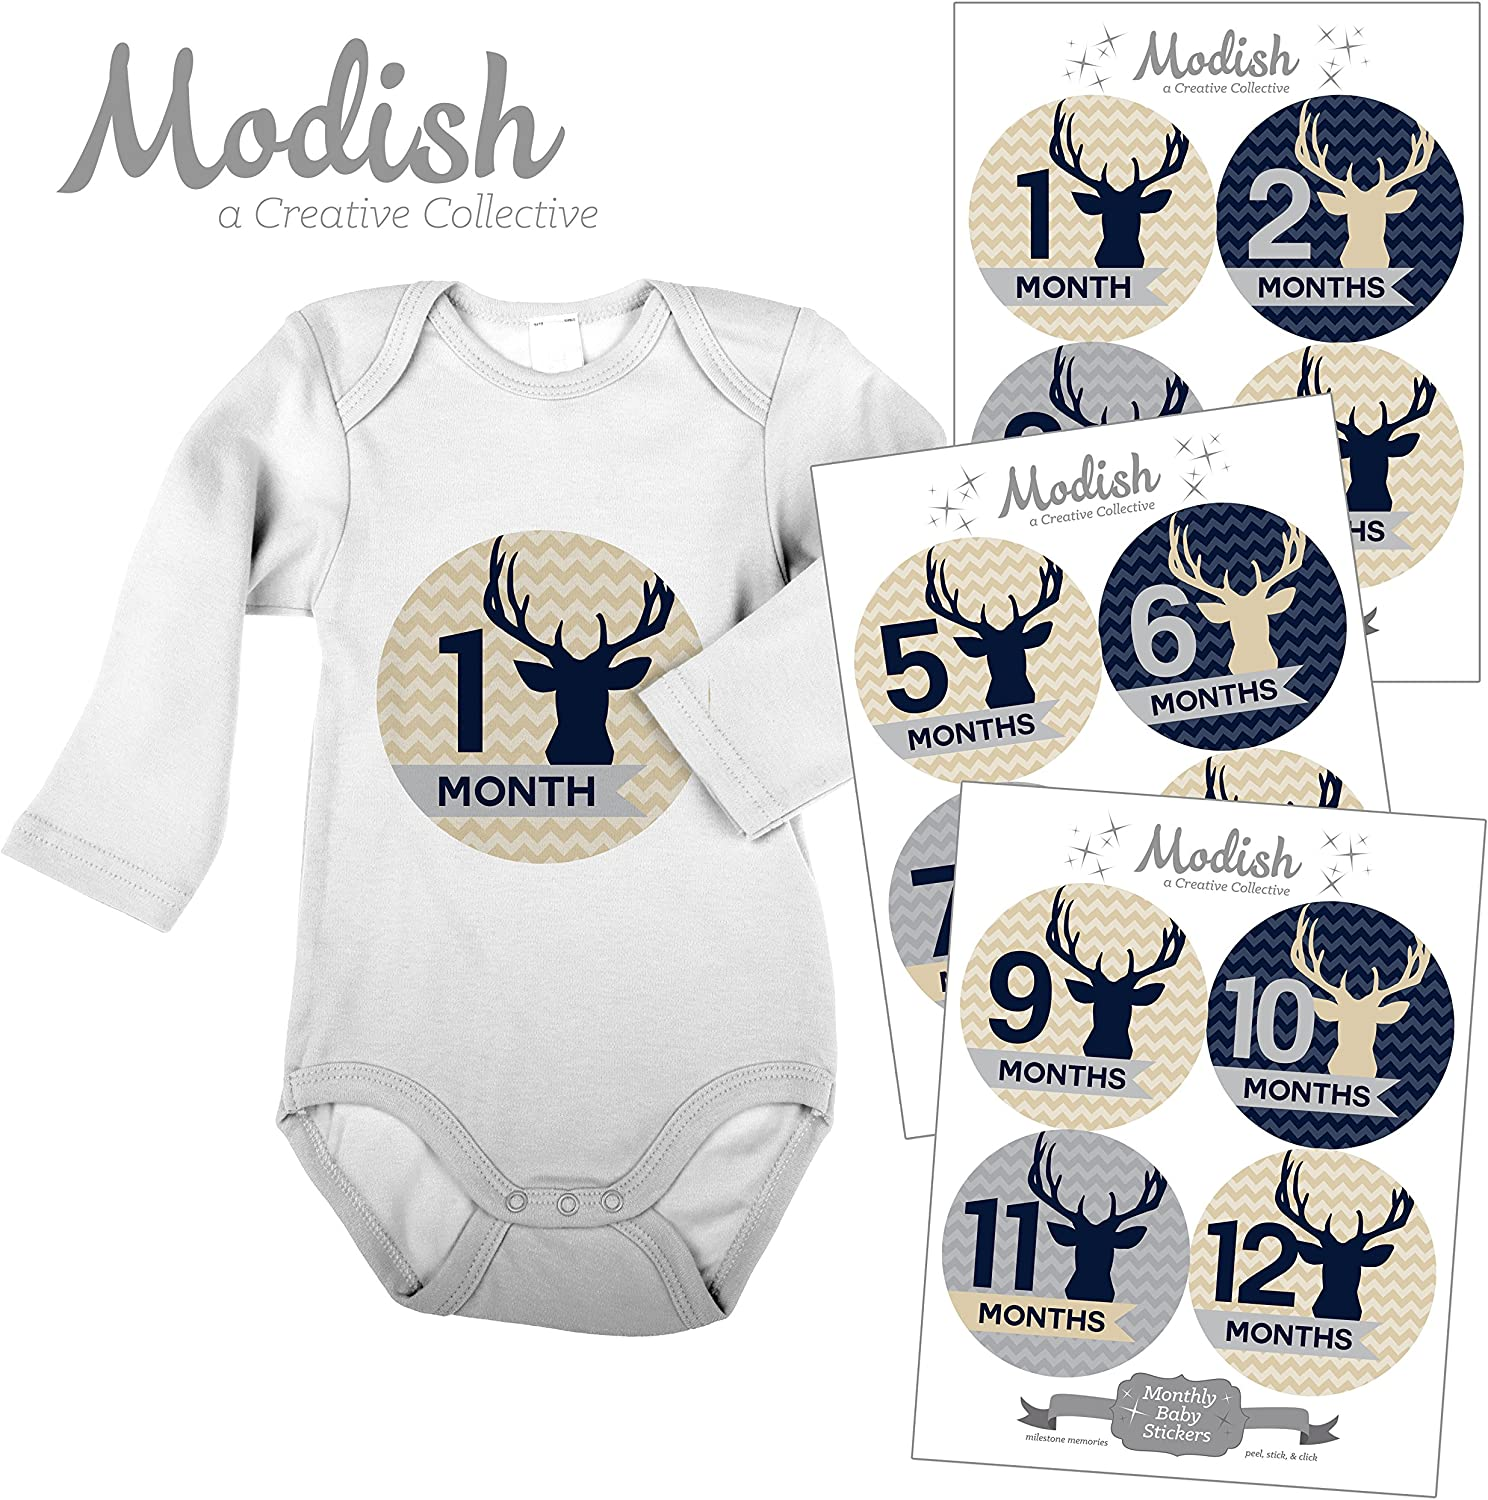 Modish Labels, 12 Monthly Baby Stickers, Baby Boy, Woodland, Deer, Antlers, Buck, Baby Month Stickers, First Year Stickers, Chevron, Tan, Beige, Blue, Navy, Gray, Grey, Baby Book Keepsake, Photo Prop